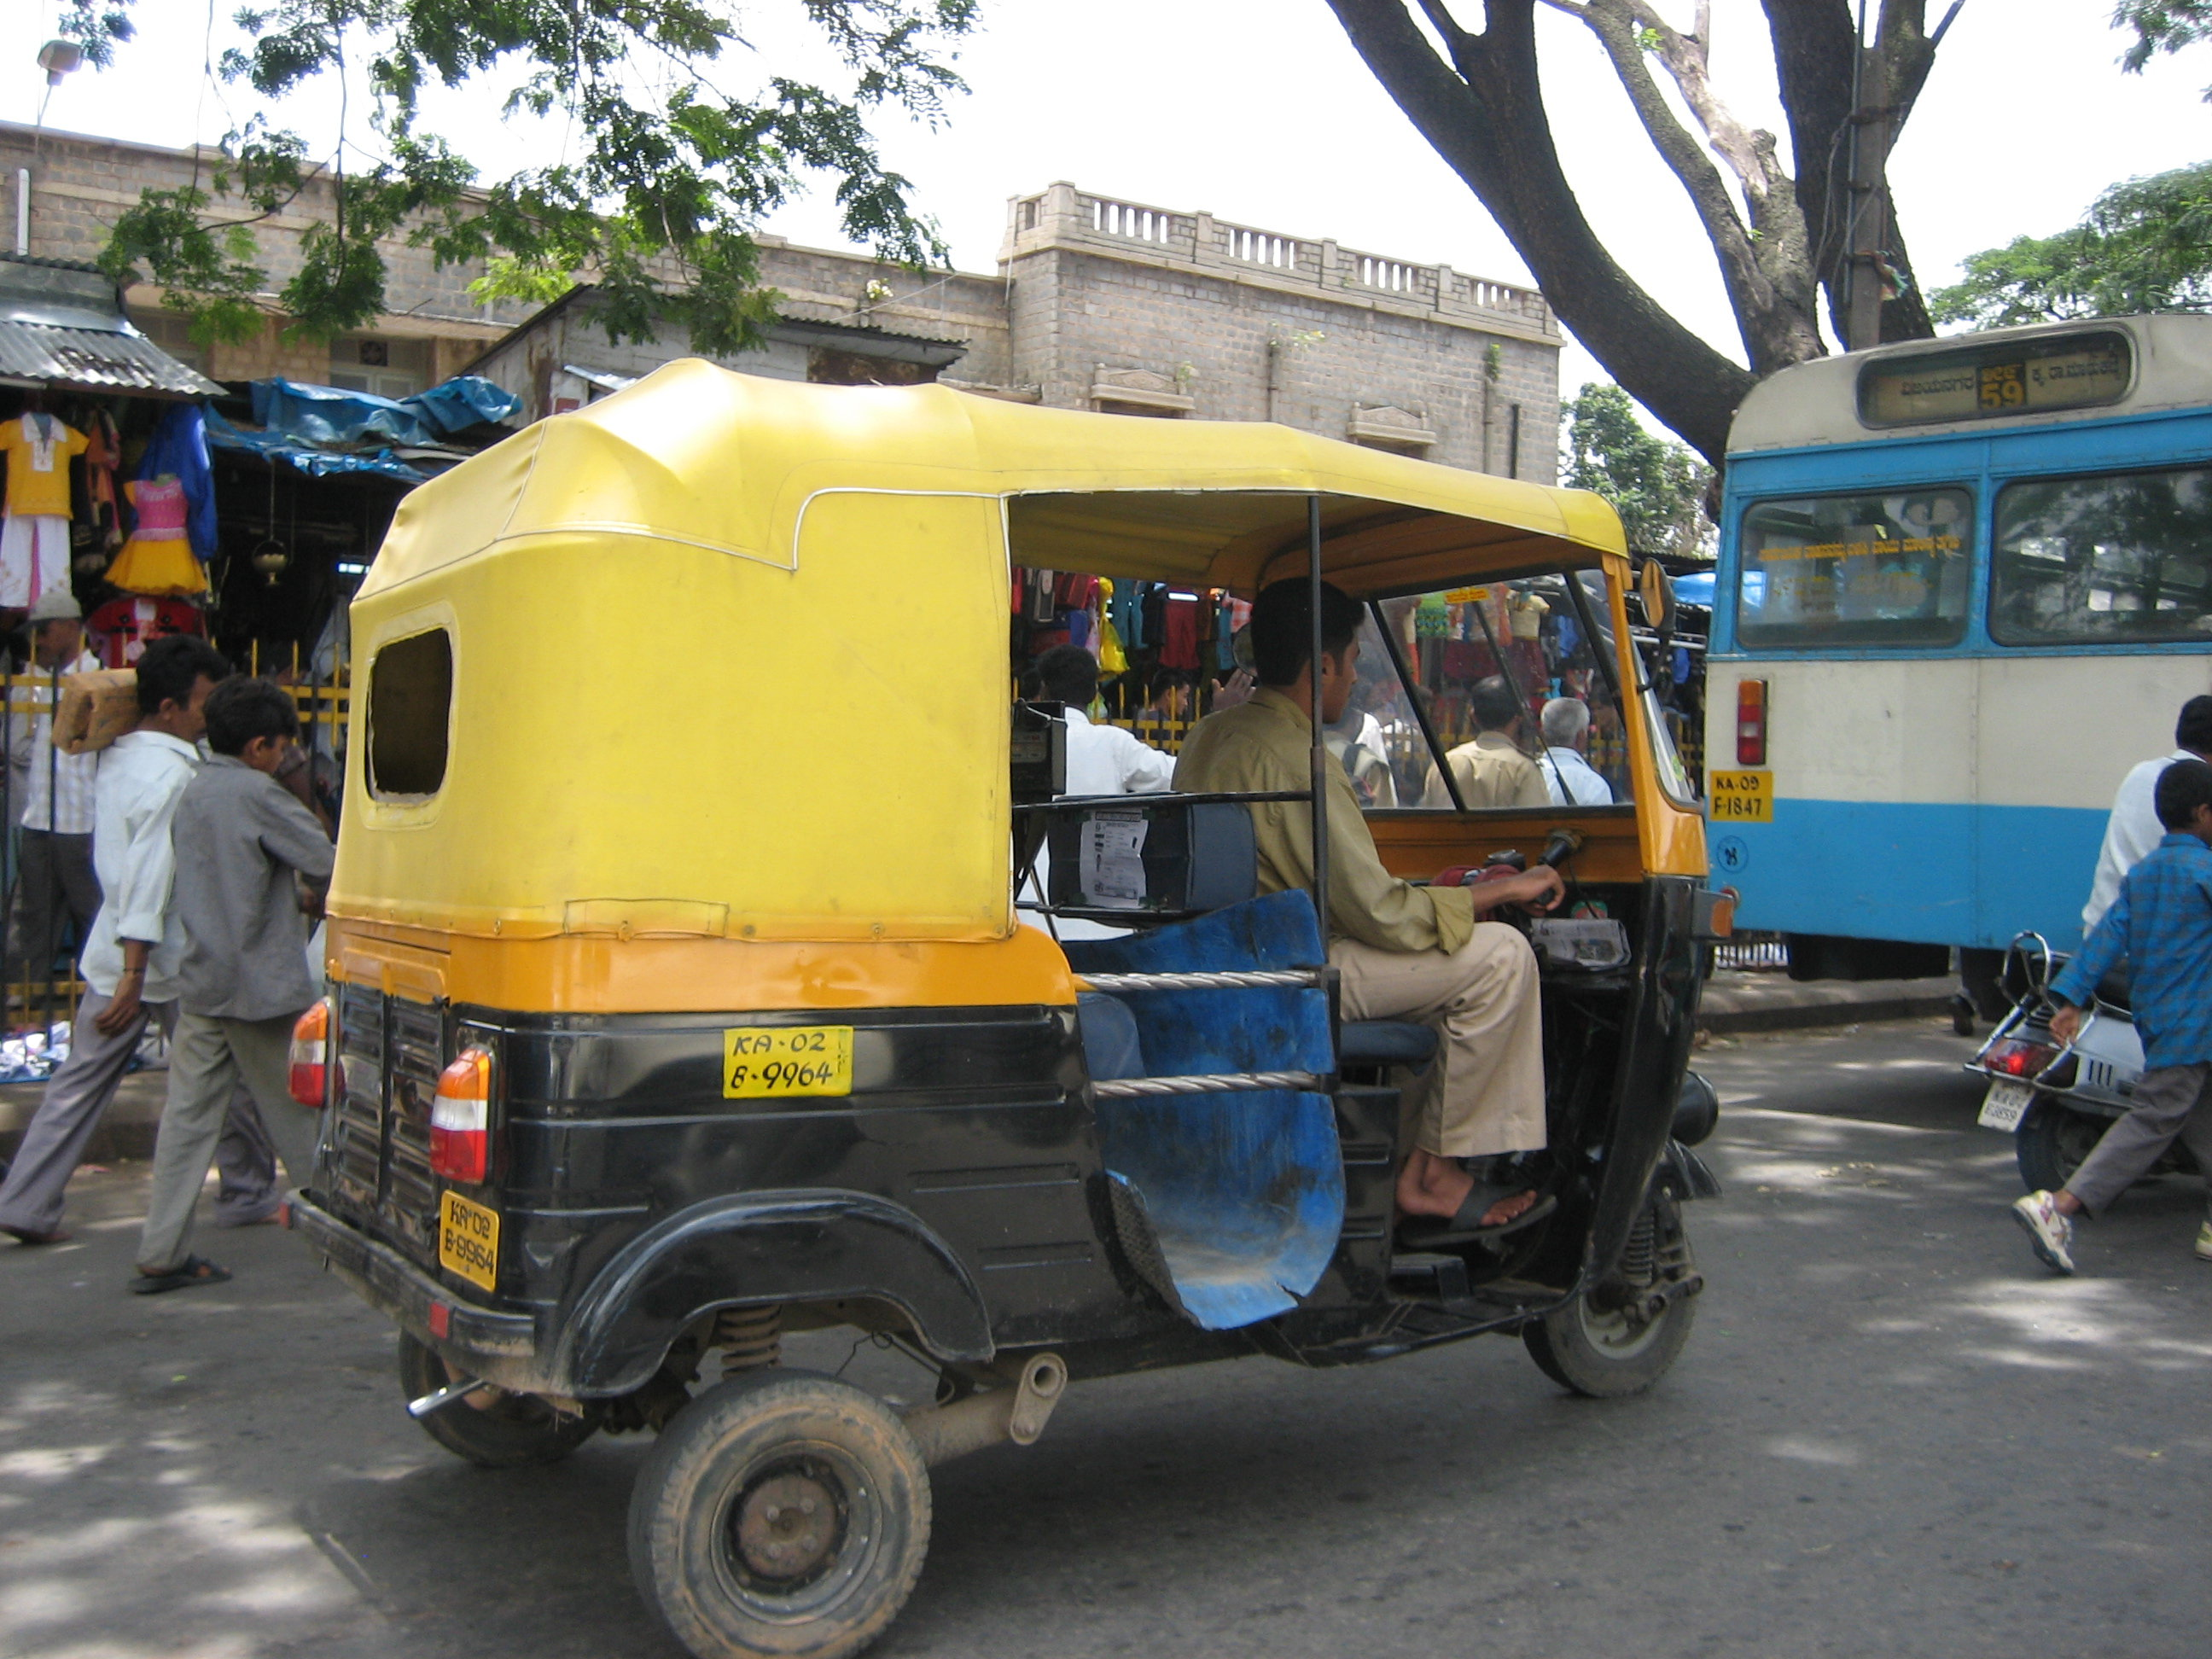 A typical rickshaw in India